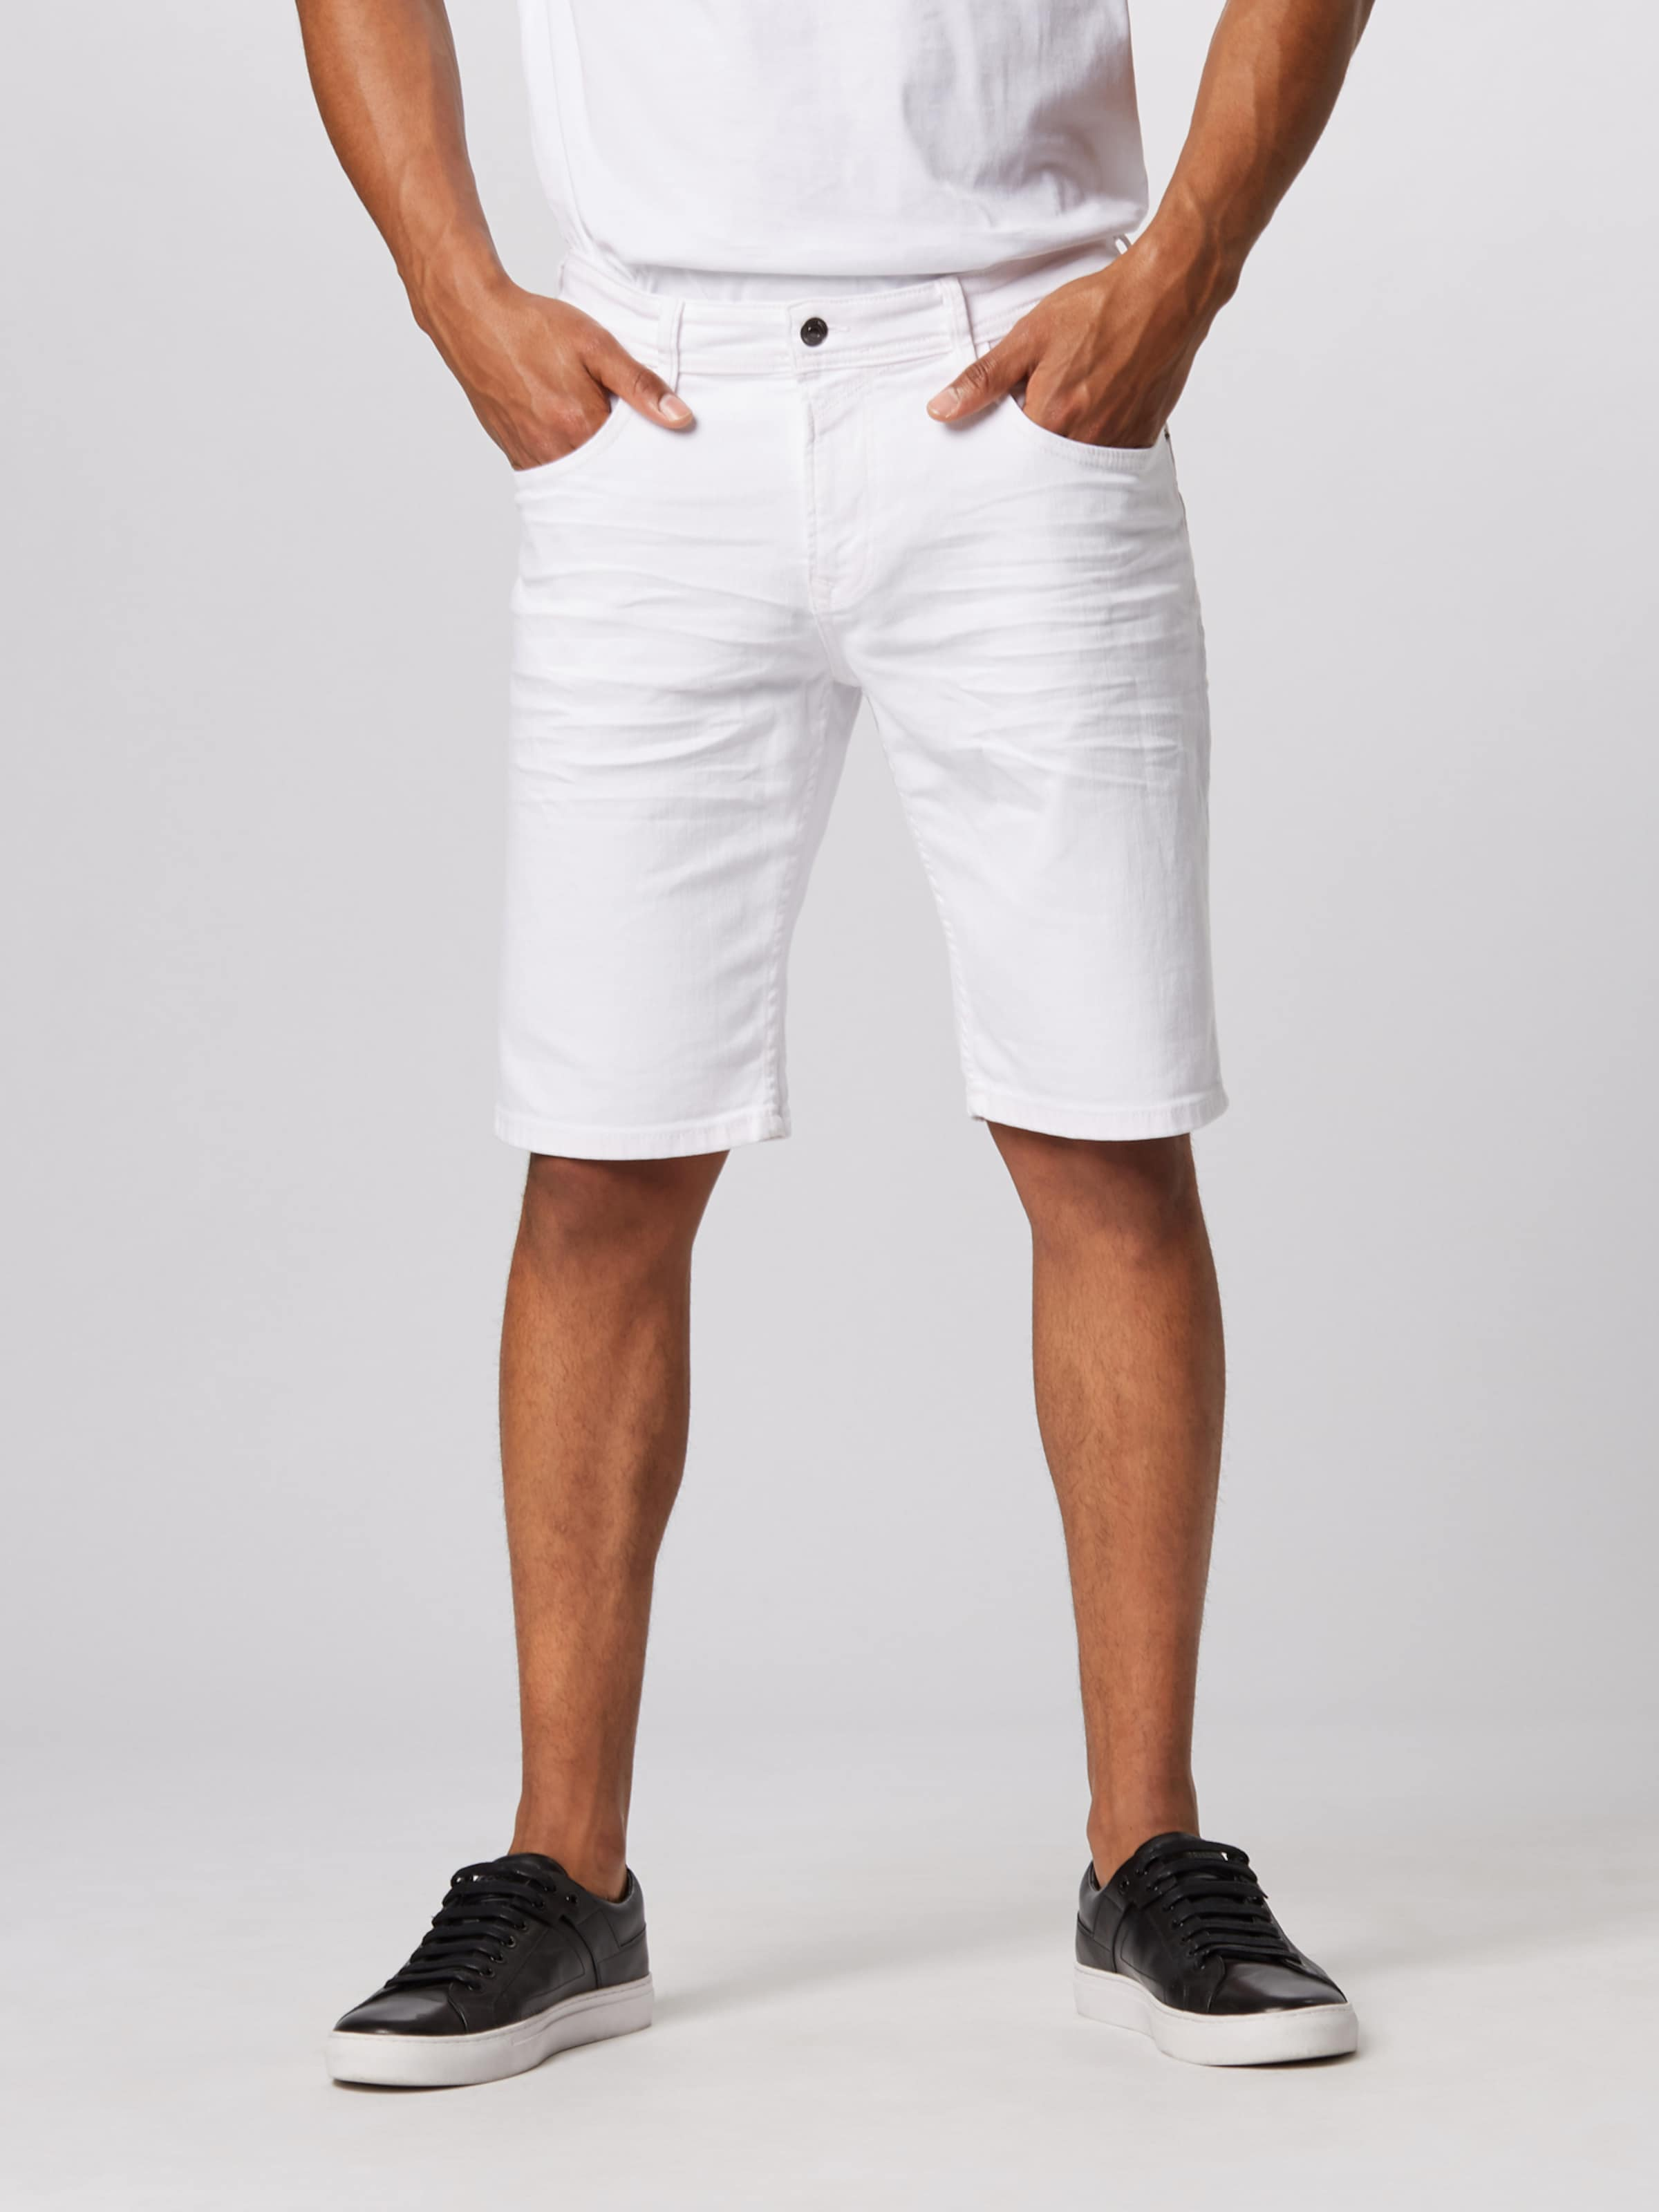 Shorts Tailor Weiß In Tom Denim hBsxdQotrC